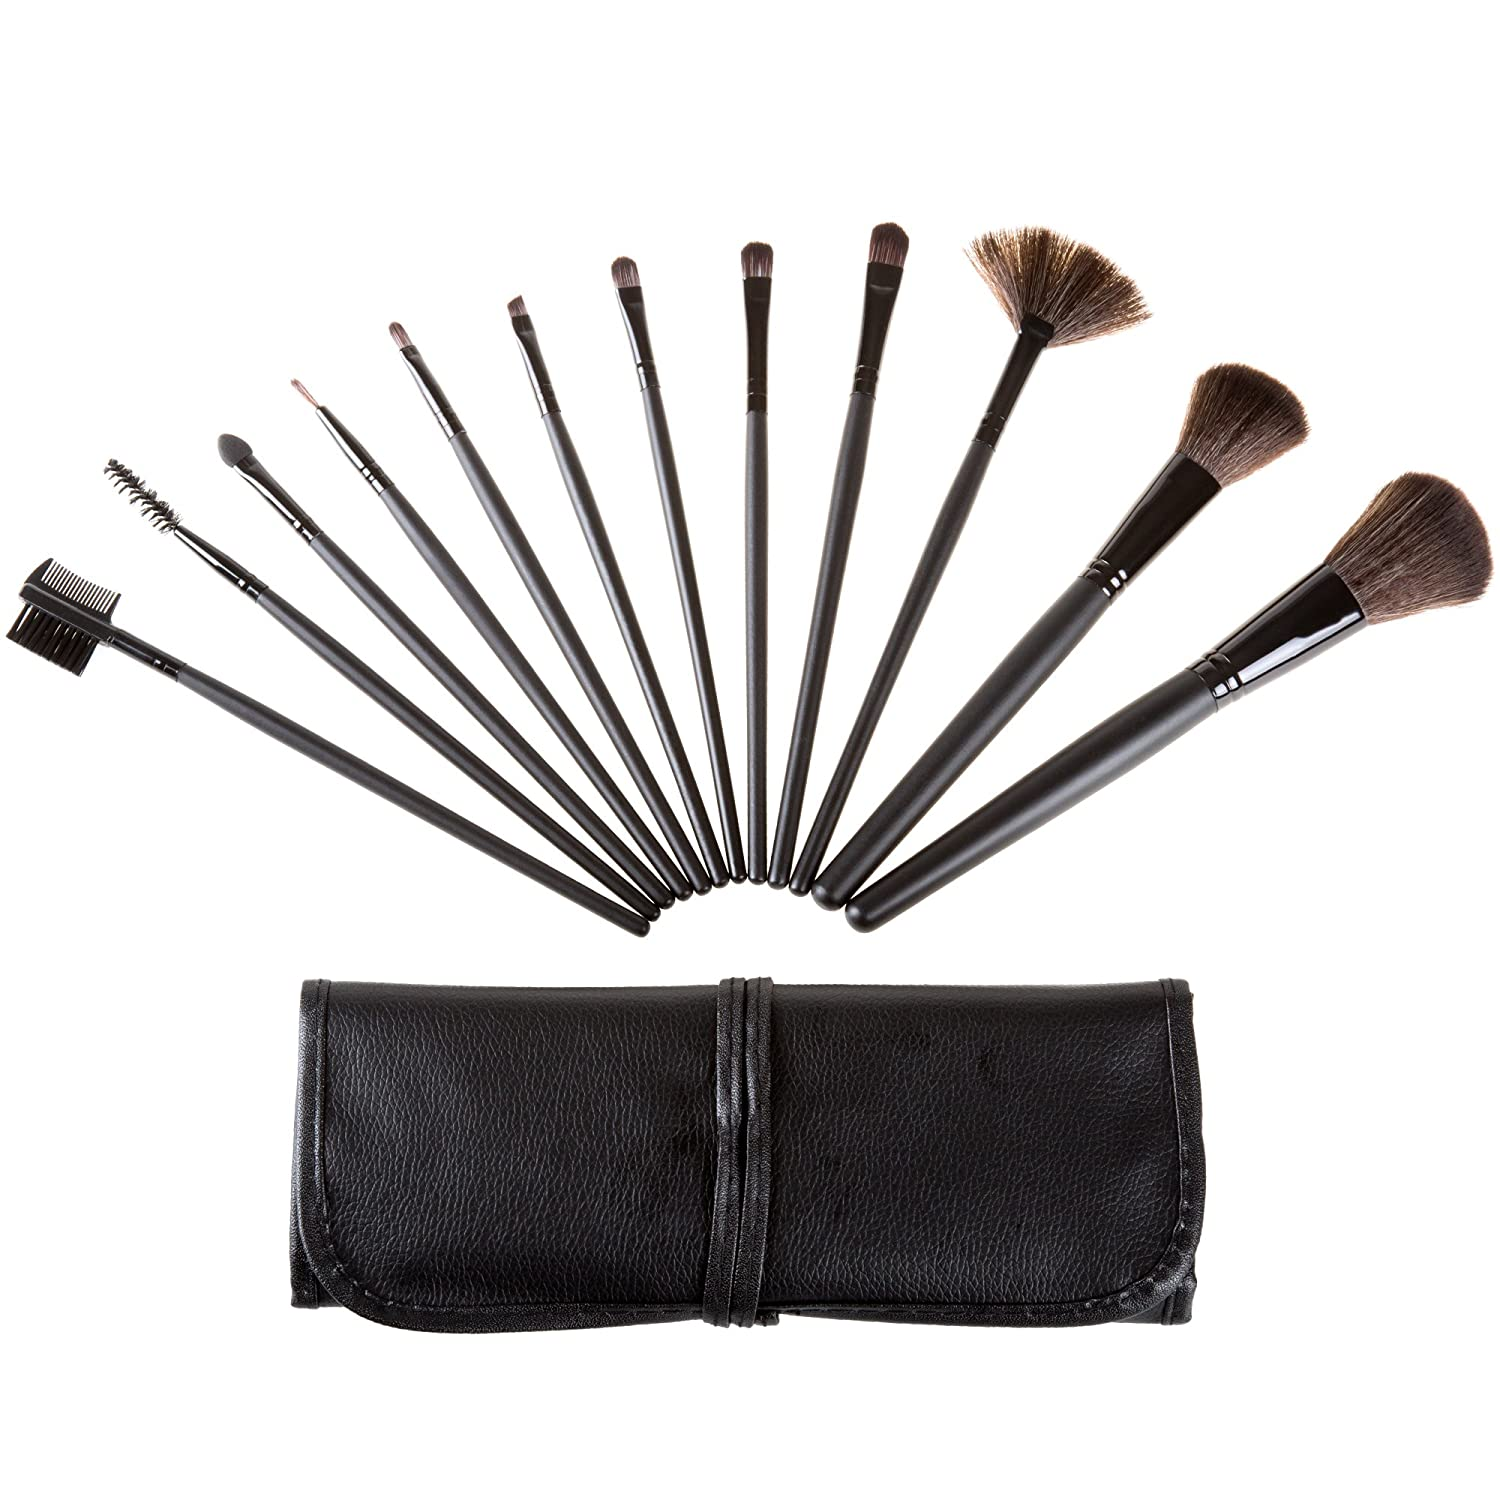 12 Piece Professional Makeup Brush Set- Includes Foundation Eyeshadow Eyeliner Eyebrow Concealer Lip Brushes by Everyday Home- Black